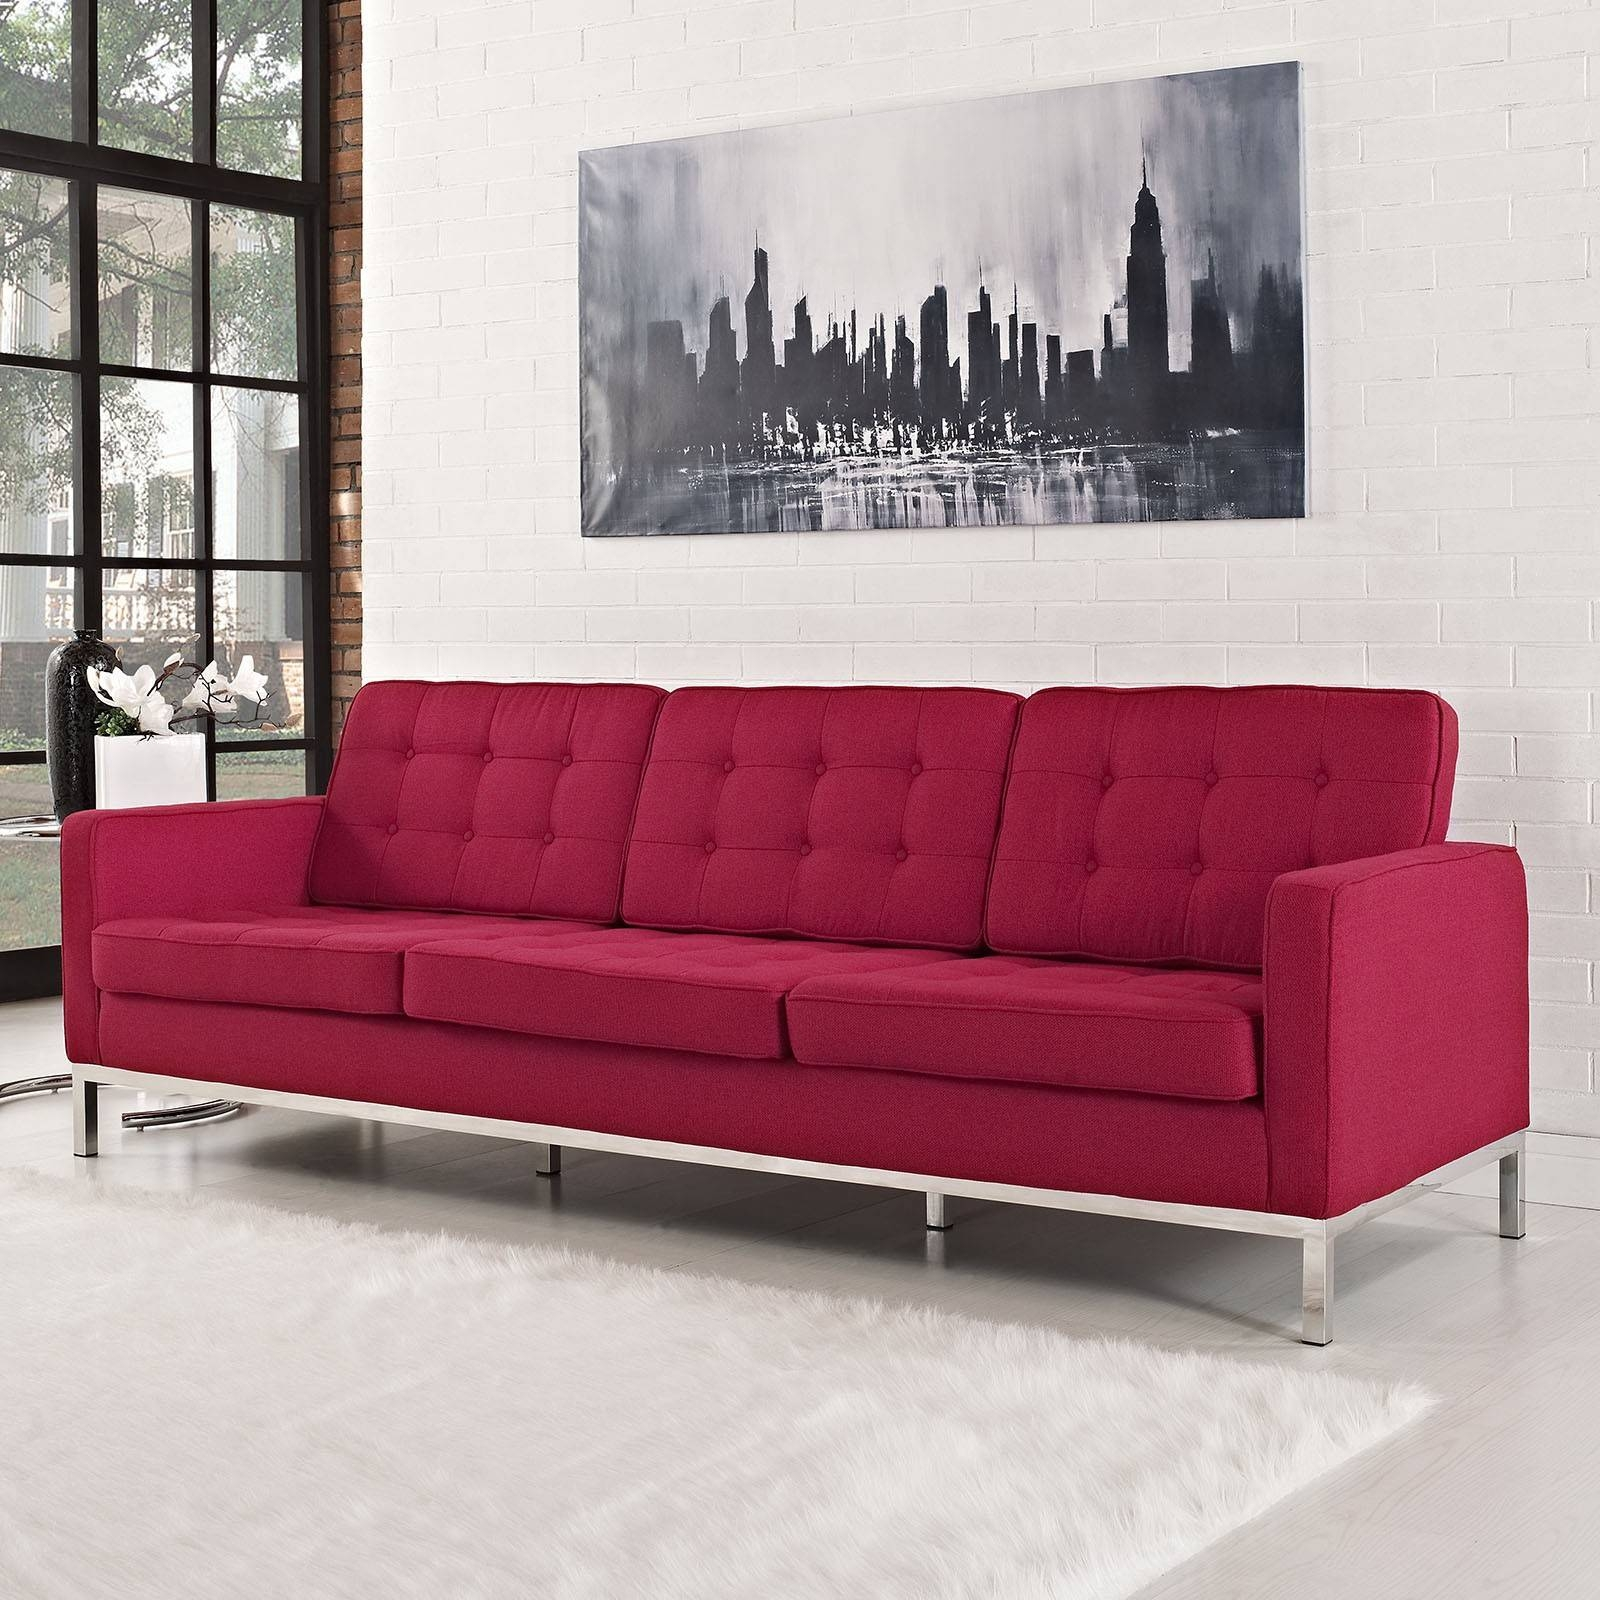 Florence Knoll Style Sofa In Fabric – (Multiple Colors/materials Regarding Tweed Fabric Sofas (View 10 of 30)